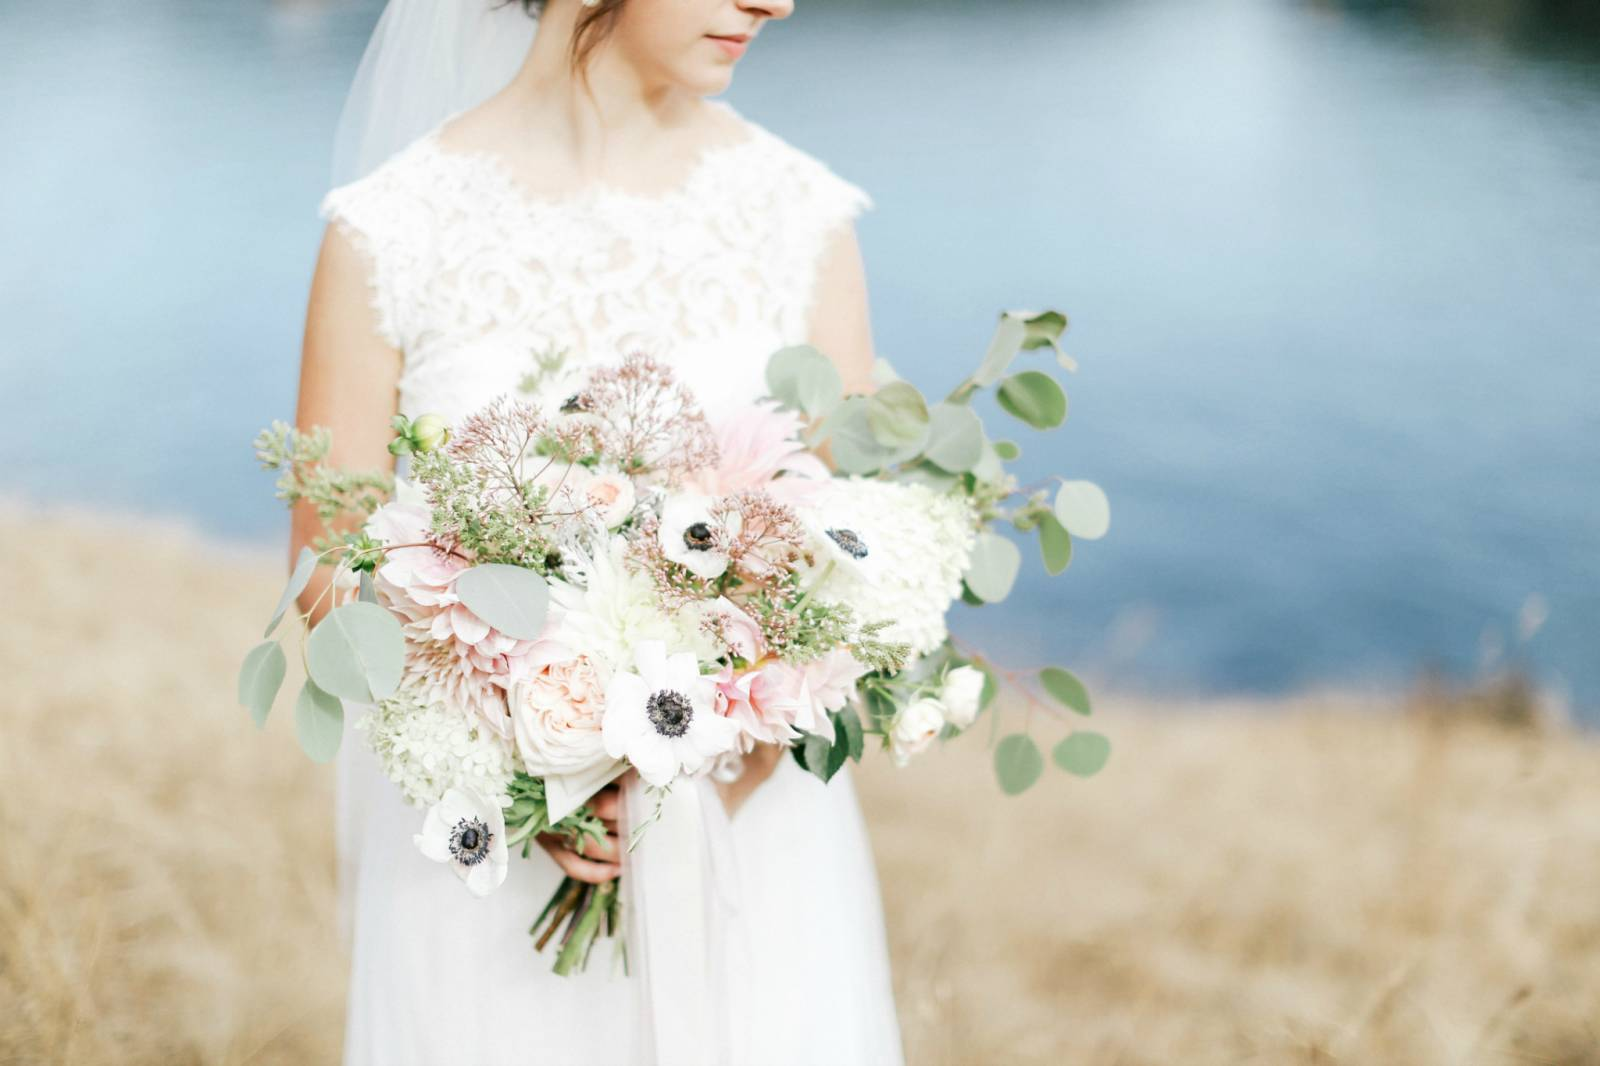 Wedding Florist Near Me.5 Minutes With Seattle Wedding Florist Country Bouquets Floral